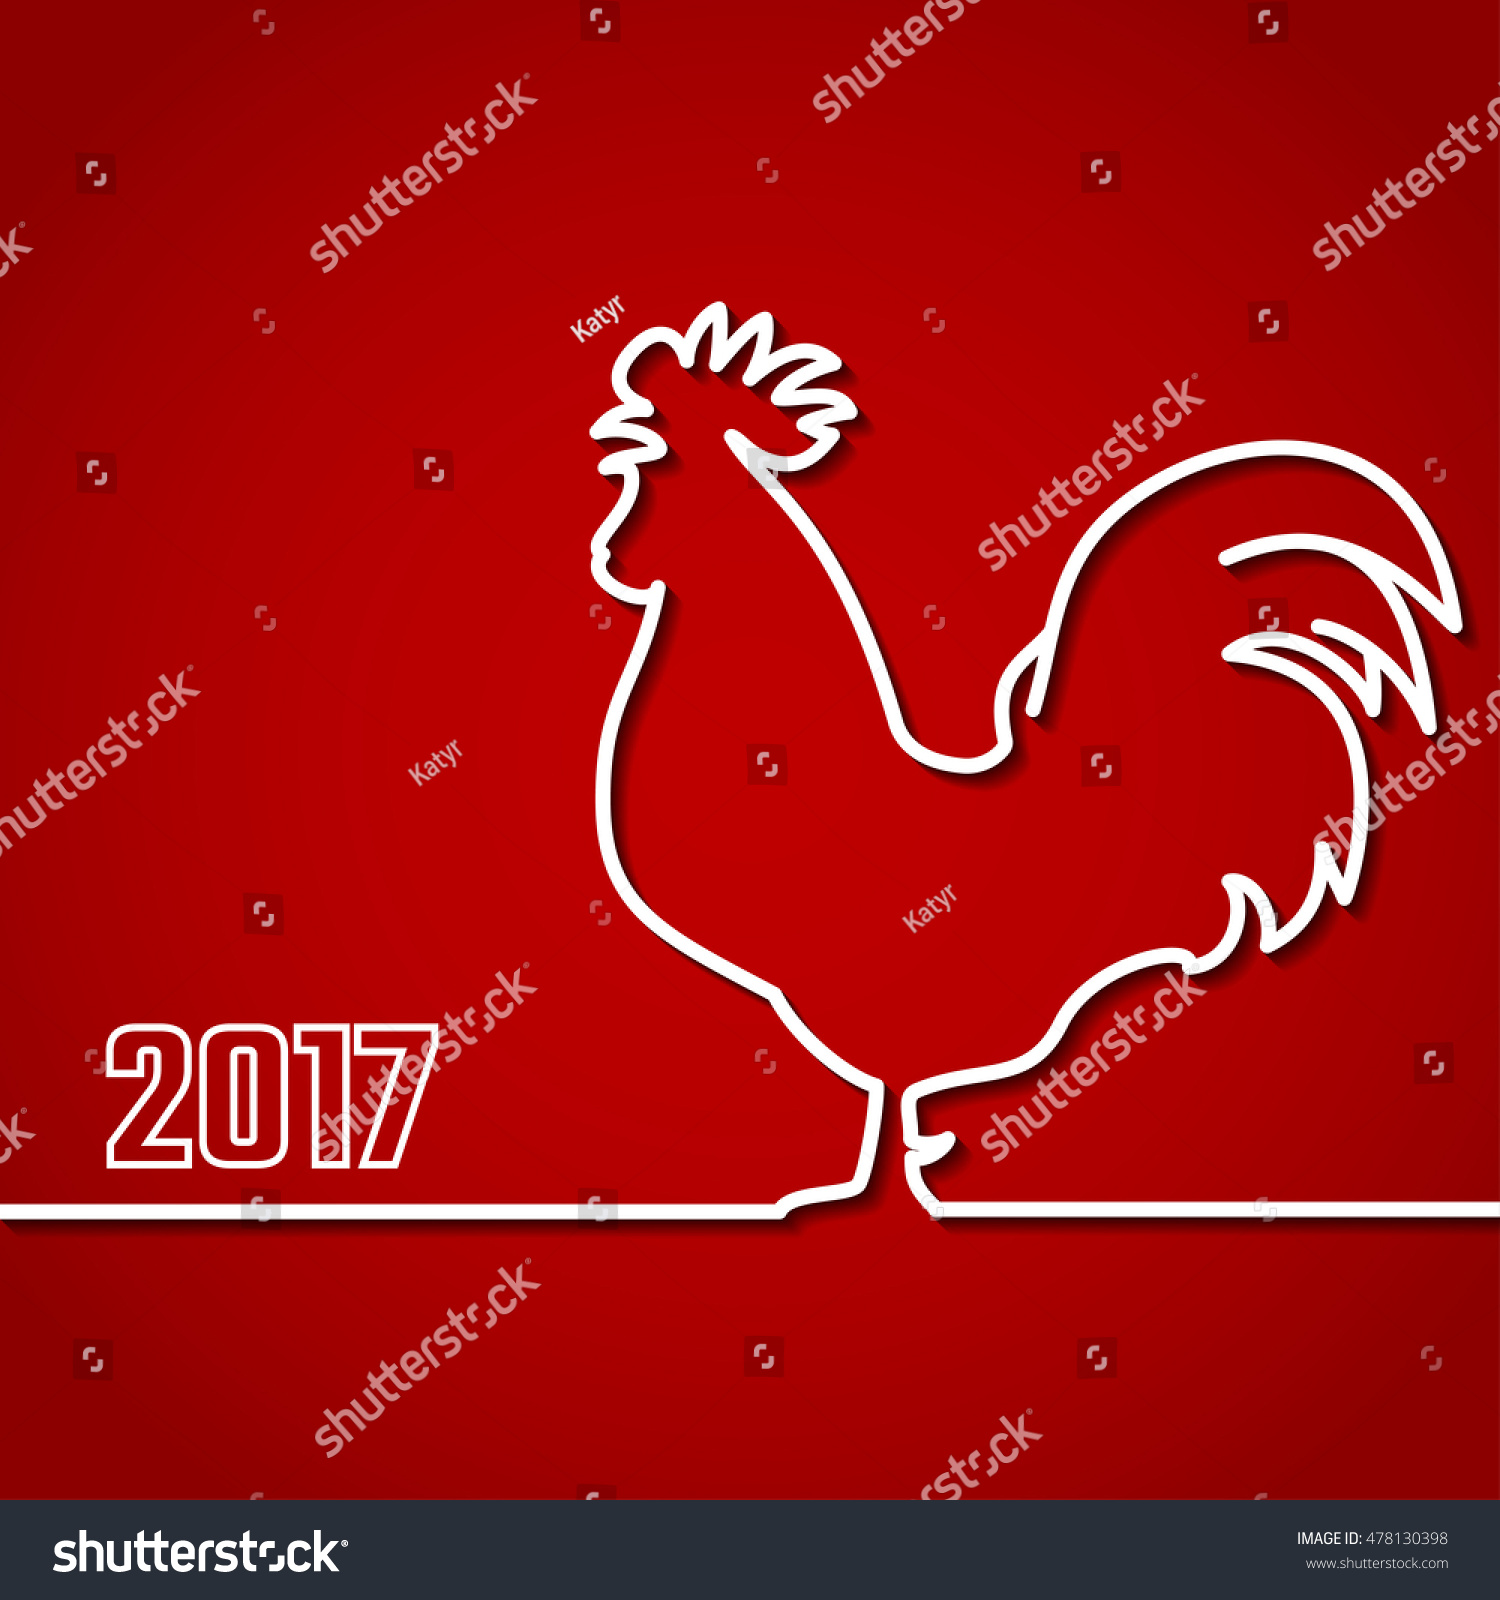 vector illustration 2017 new year outline stock vector 478130398 vector illustration of 2017 new year outline background for design website banner holiday